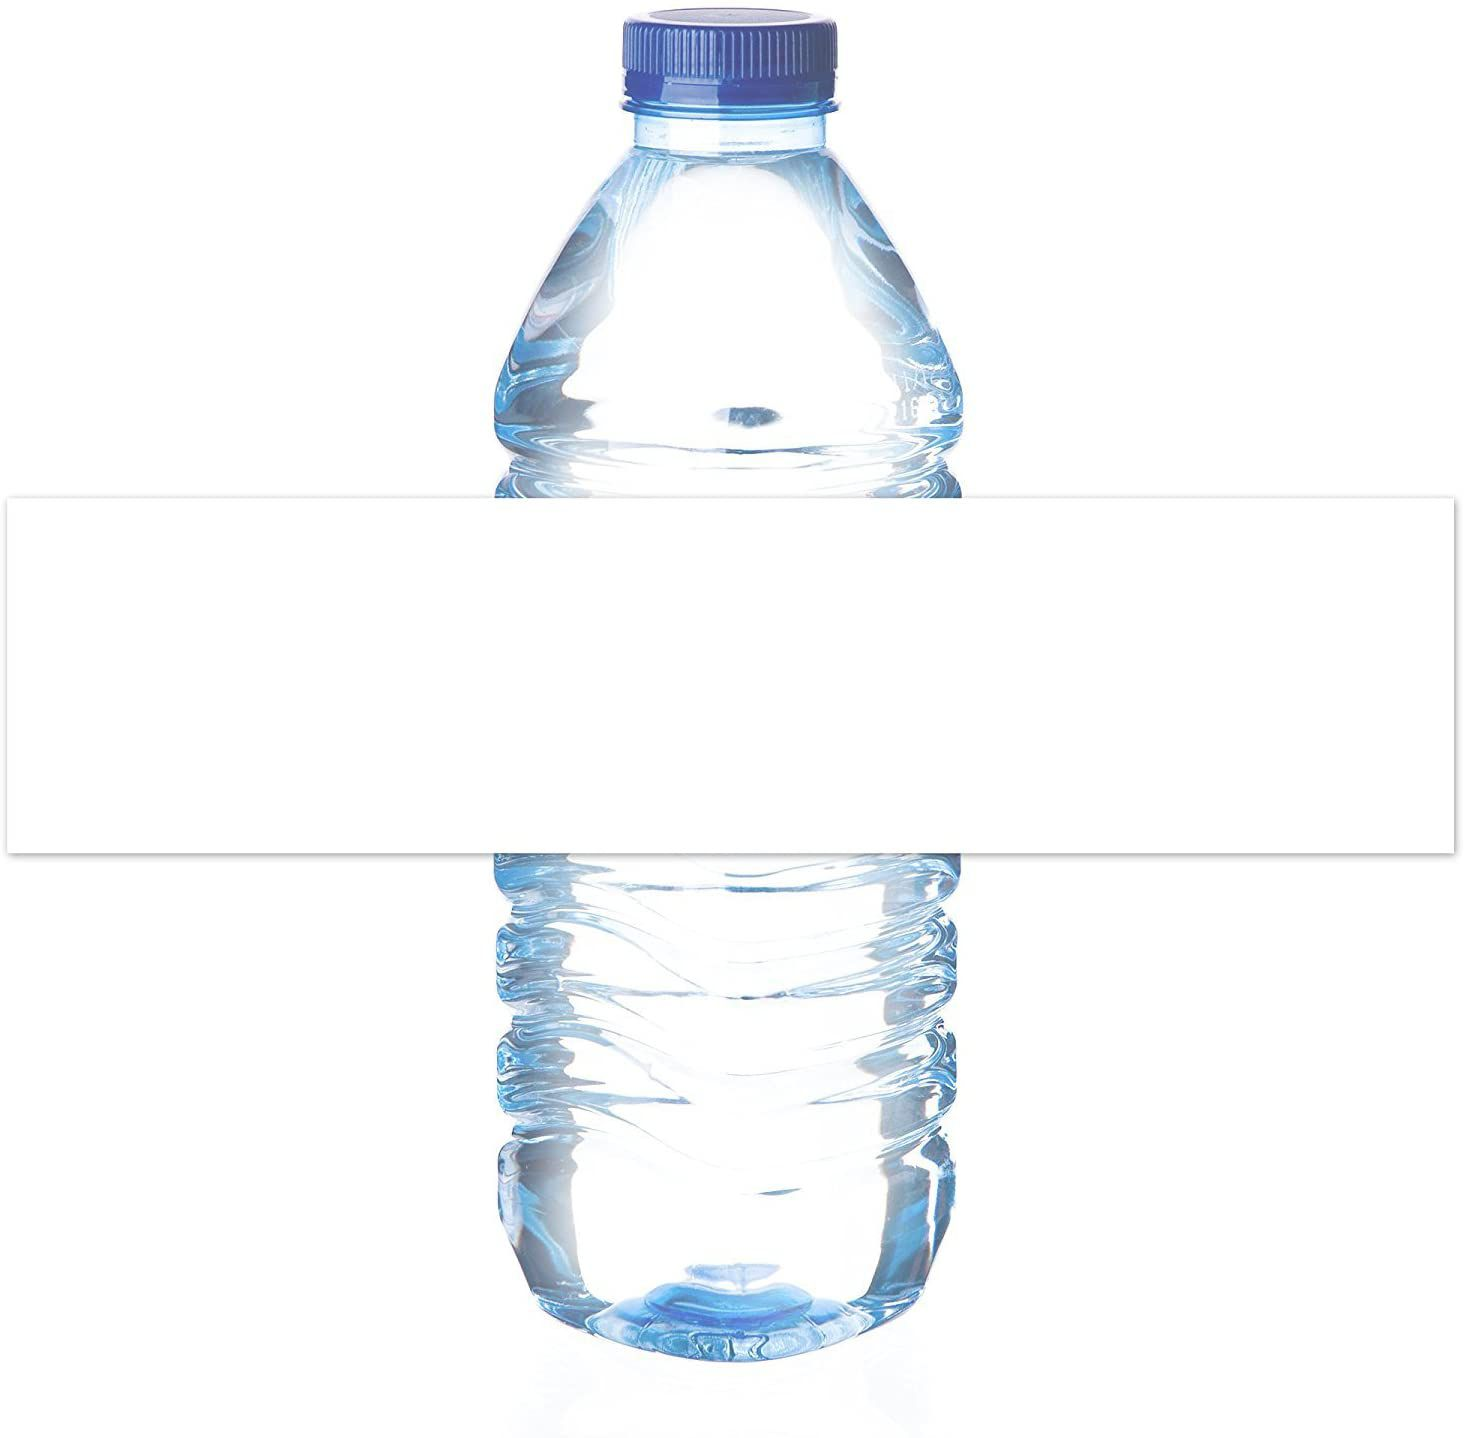 001 Incredible Water Bottle Label Template Inspiration  Free Photoshop Baby Shower PsdFull